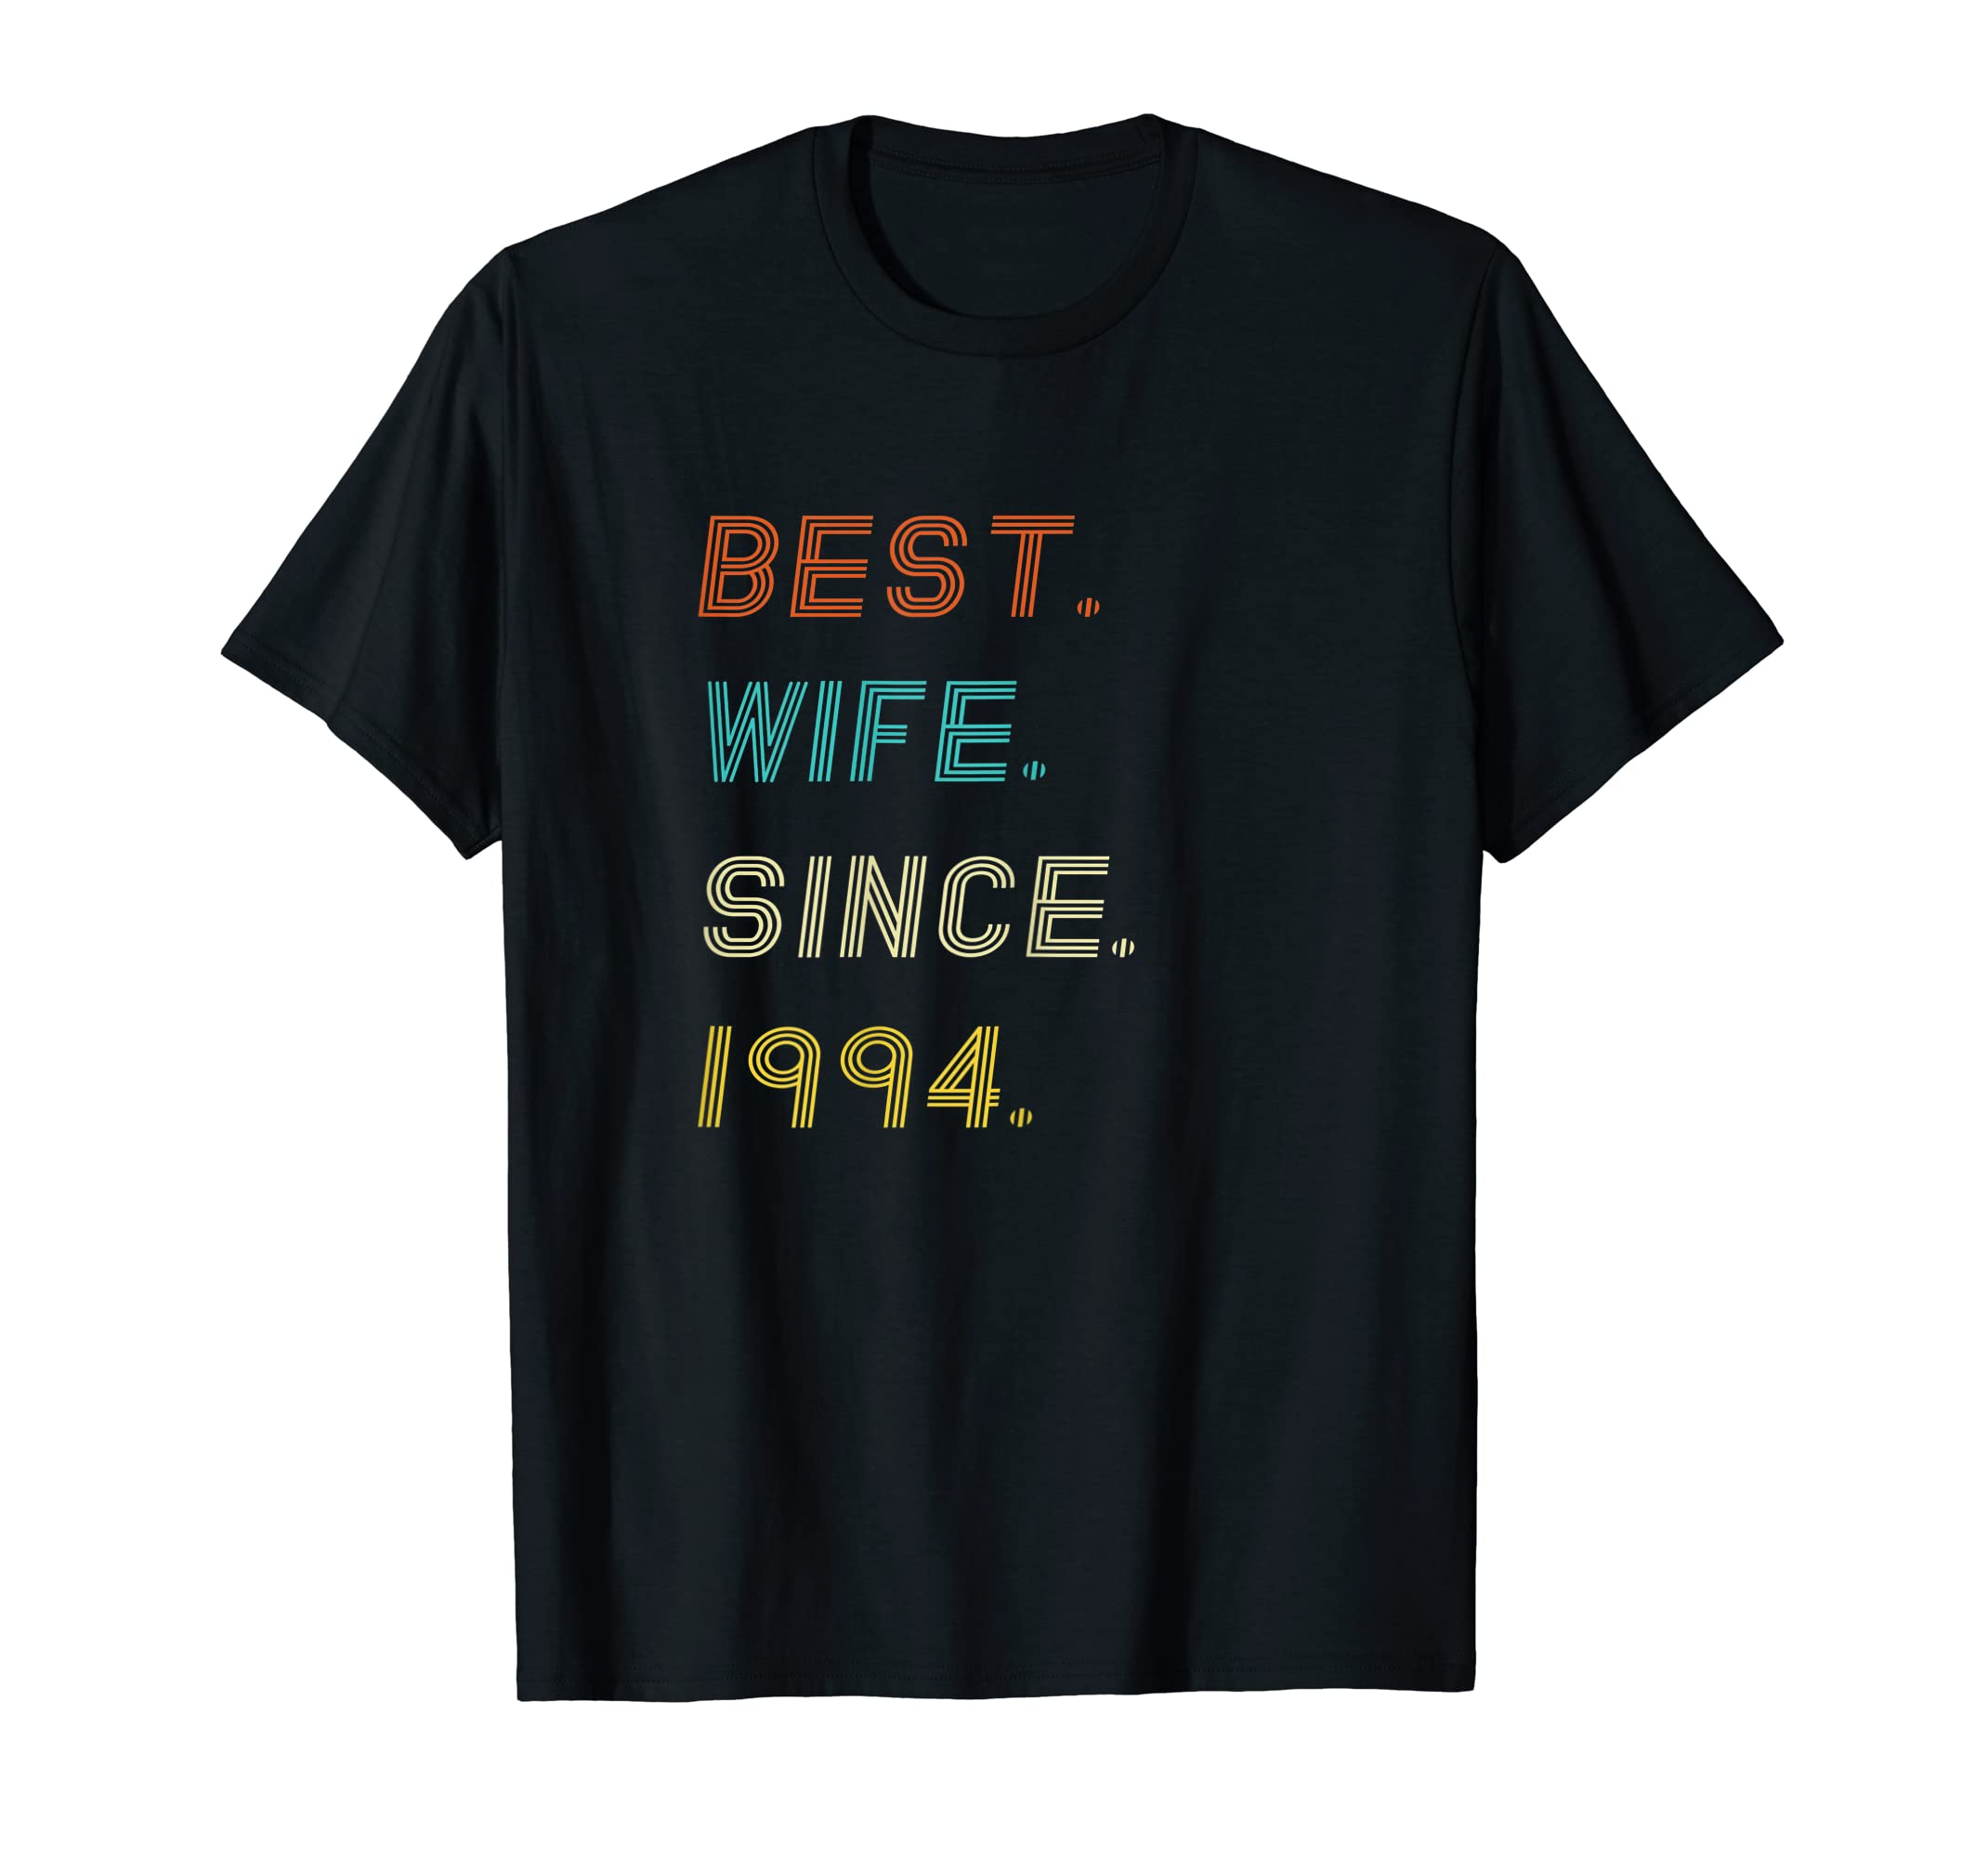 Womens 25th Wedding Anniversary Gifts Best Wife Since 1994 T-Shirt-Men's T-Shirt-Black